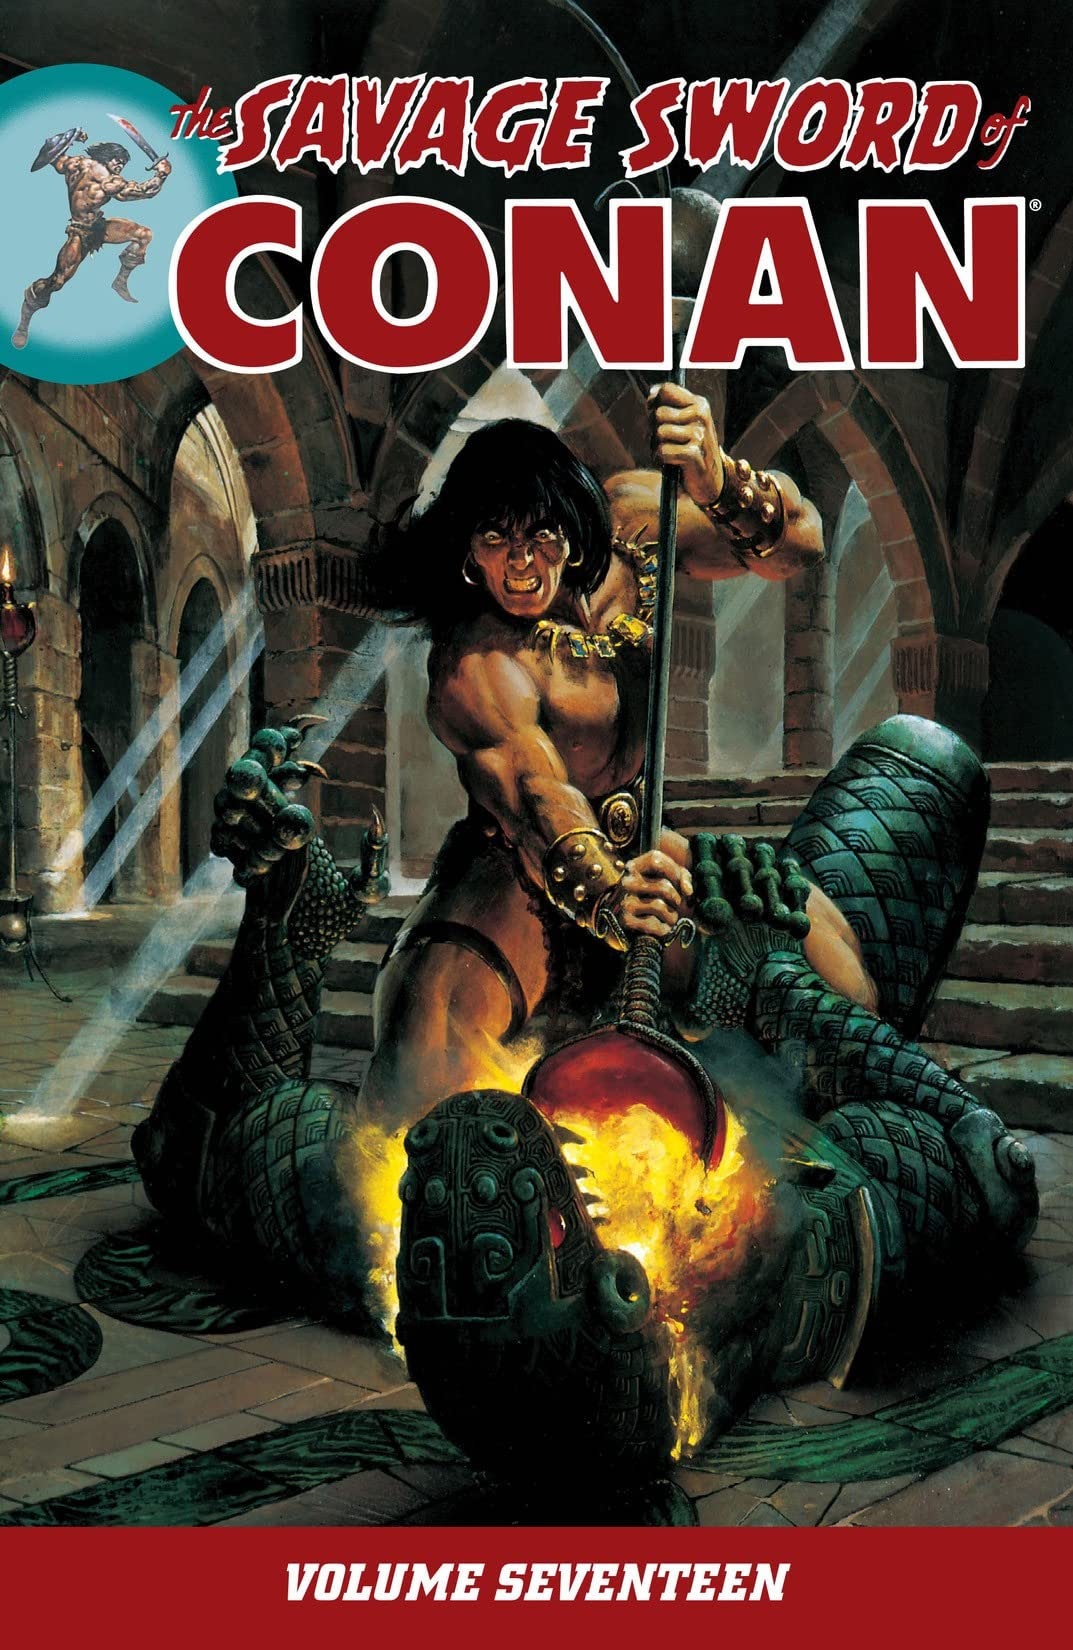 The Savage Sword of Conan Vol. 17